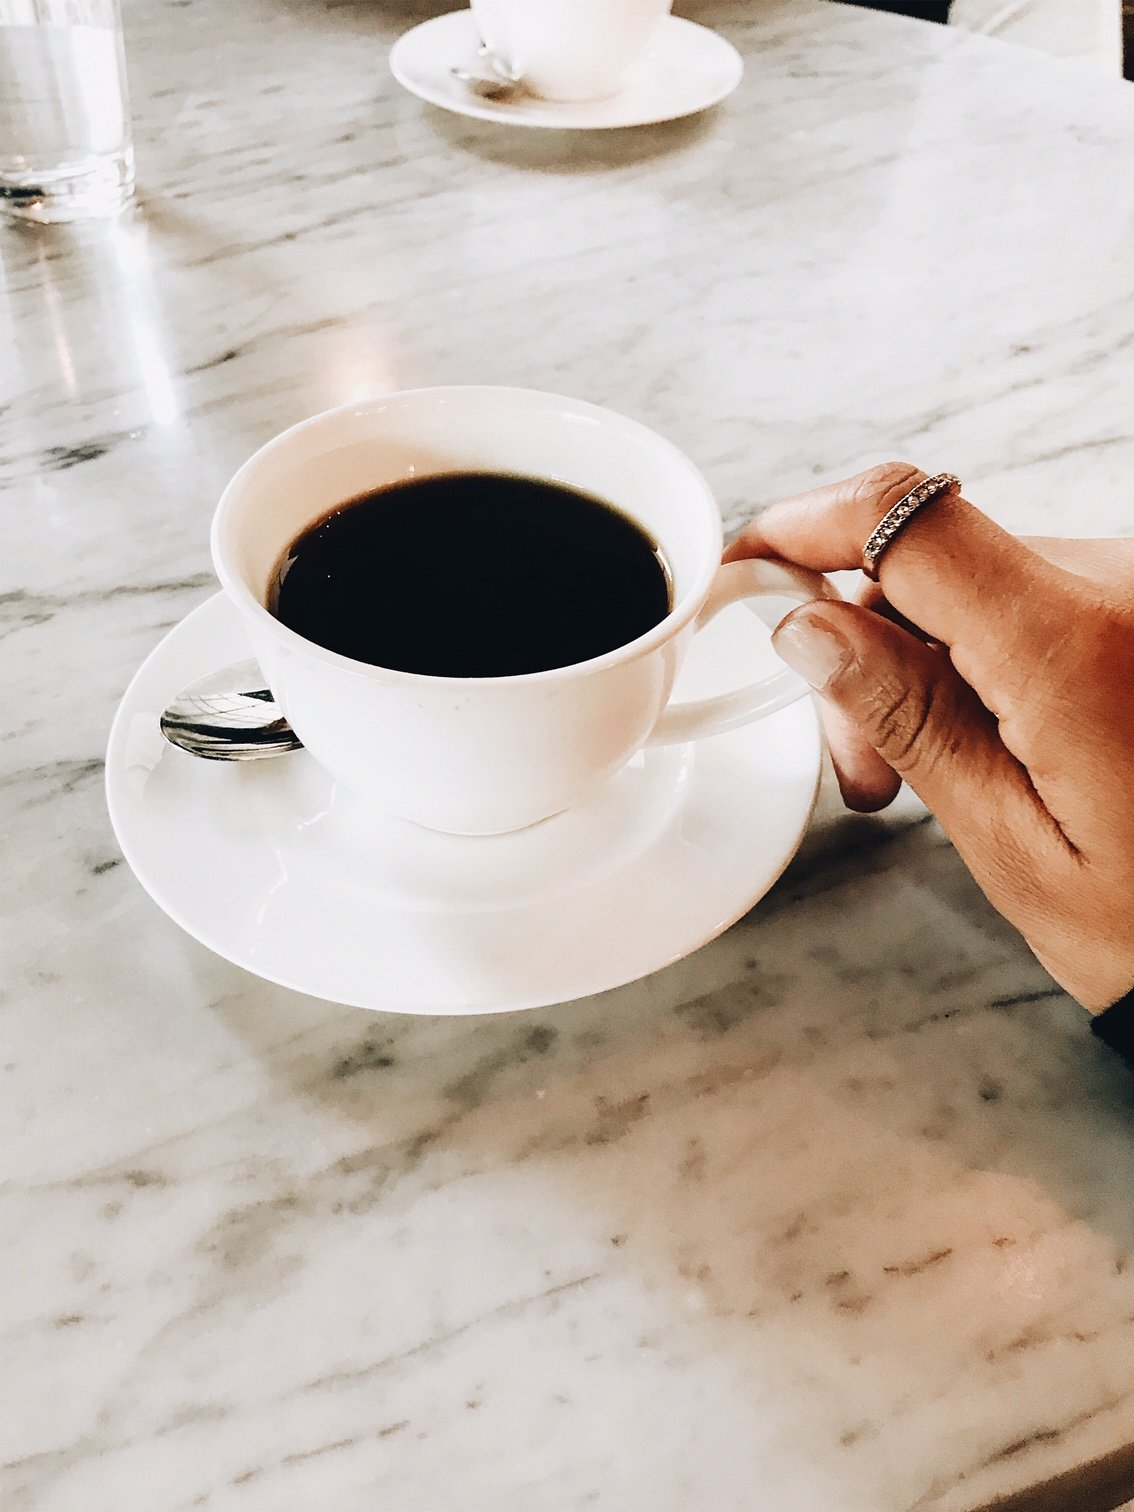 Spending a weekend in Chicago? You have to check out the coffee shops and cafes when you're traveling! Here are some of the chicest chicago cafes to visit on your next trip